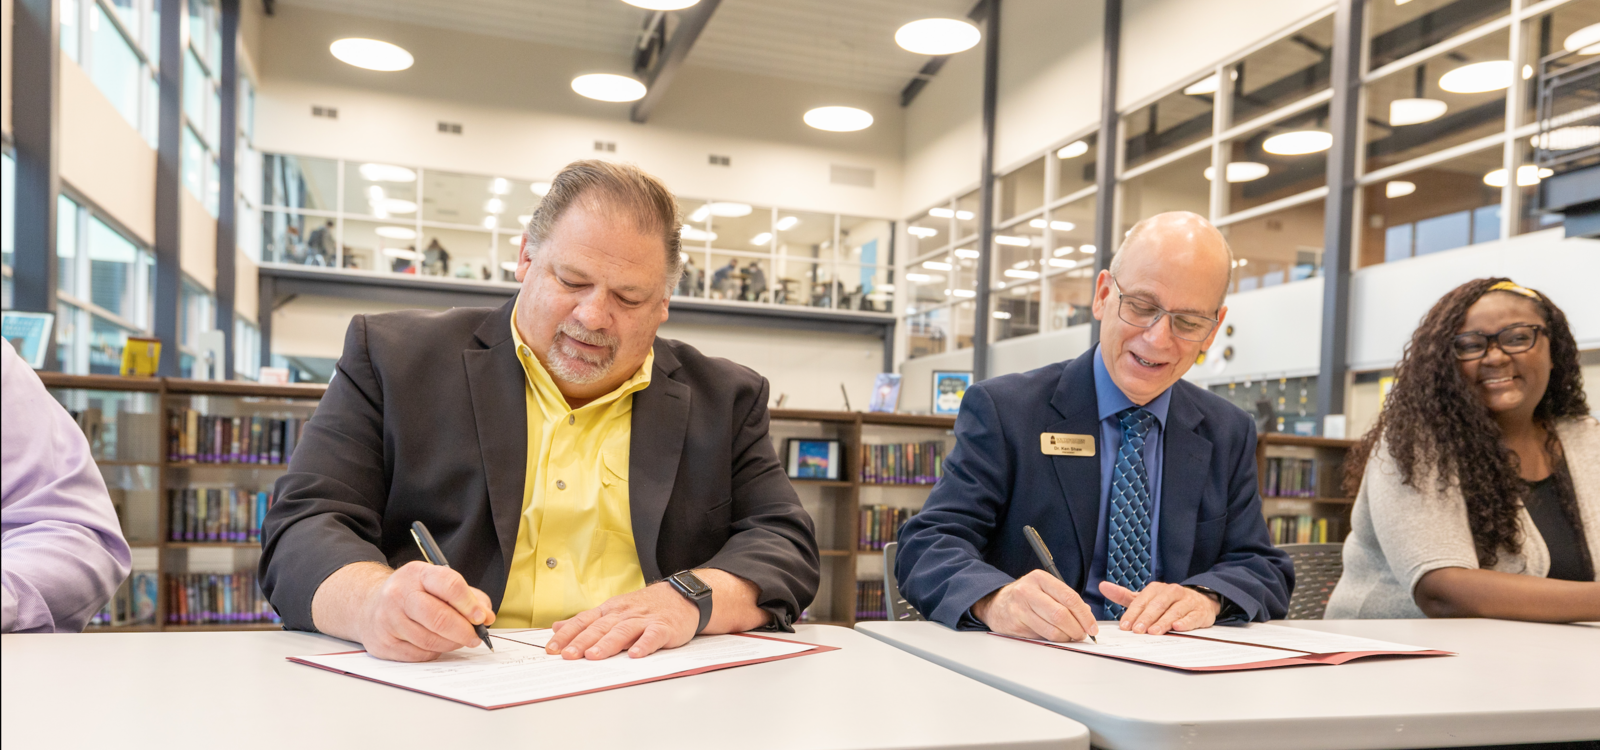 Dr. Shaw and another man sign papers on tables in a library